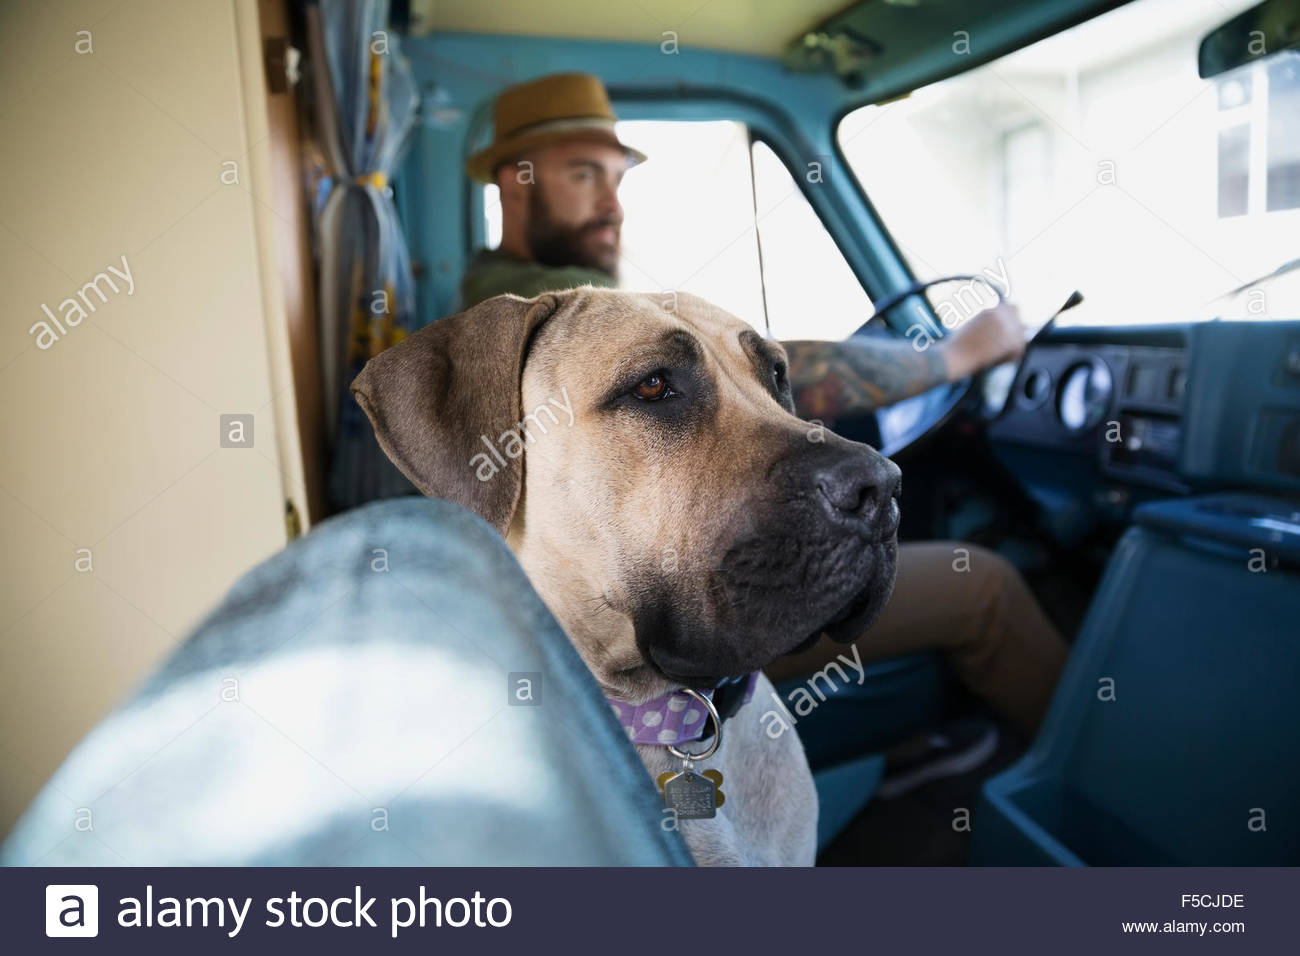 Dog riding in van with man - Stock Image